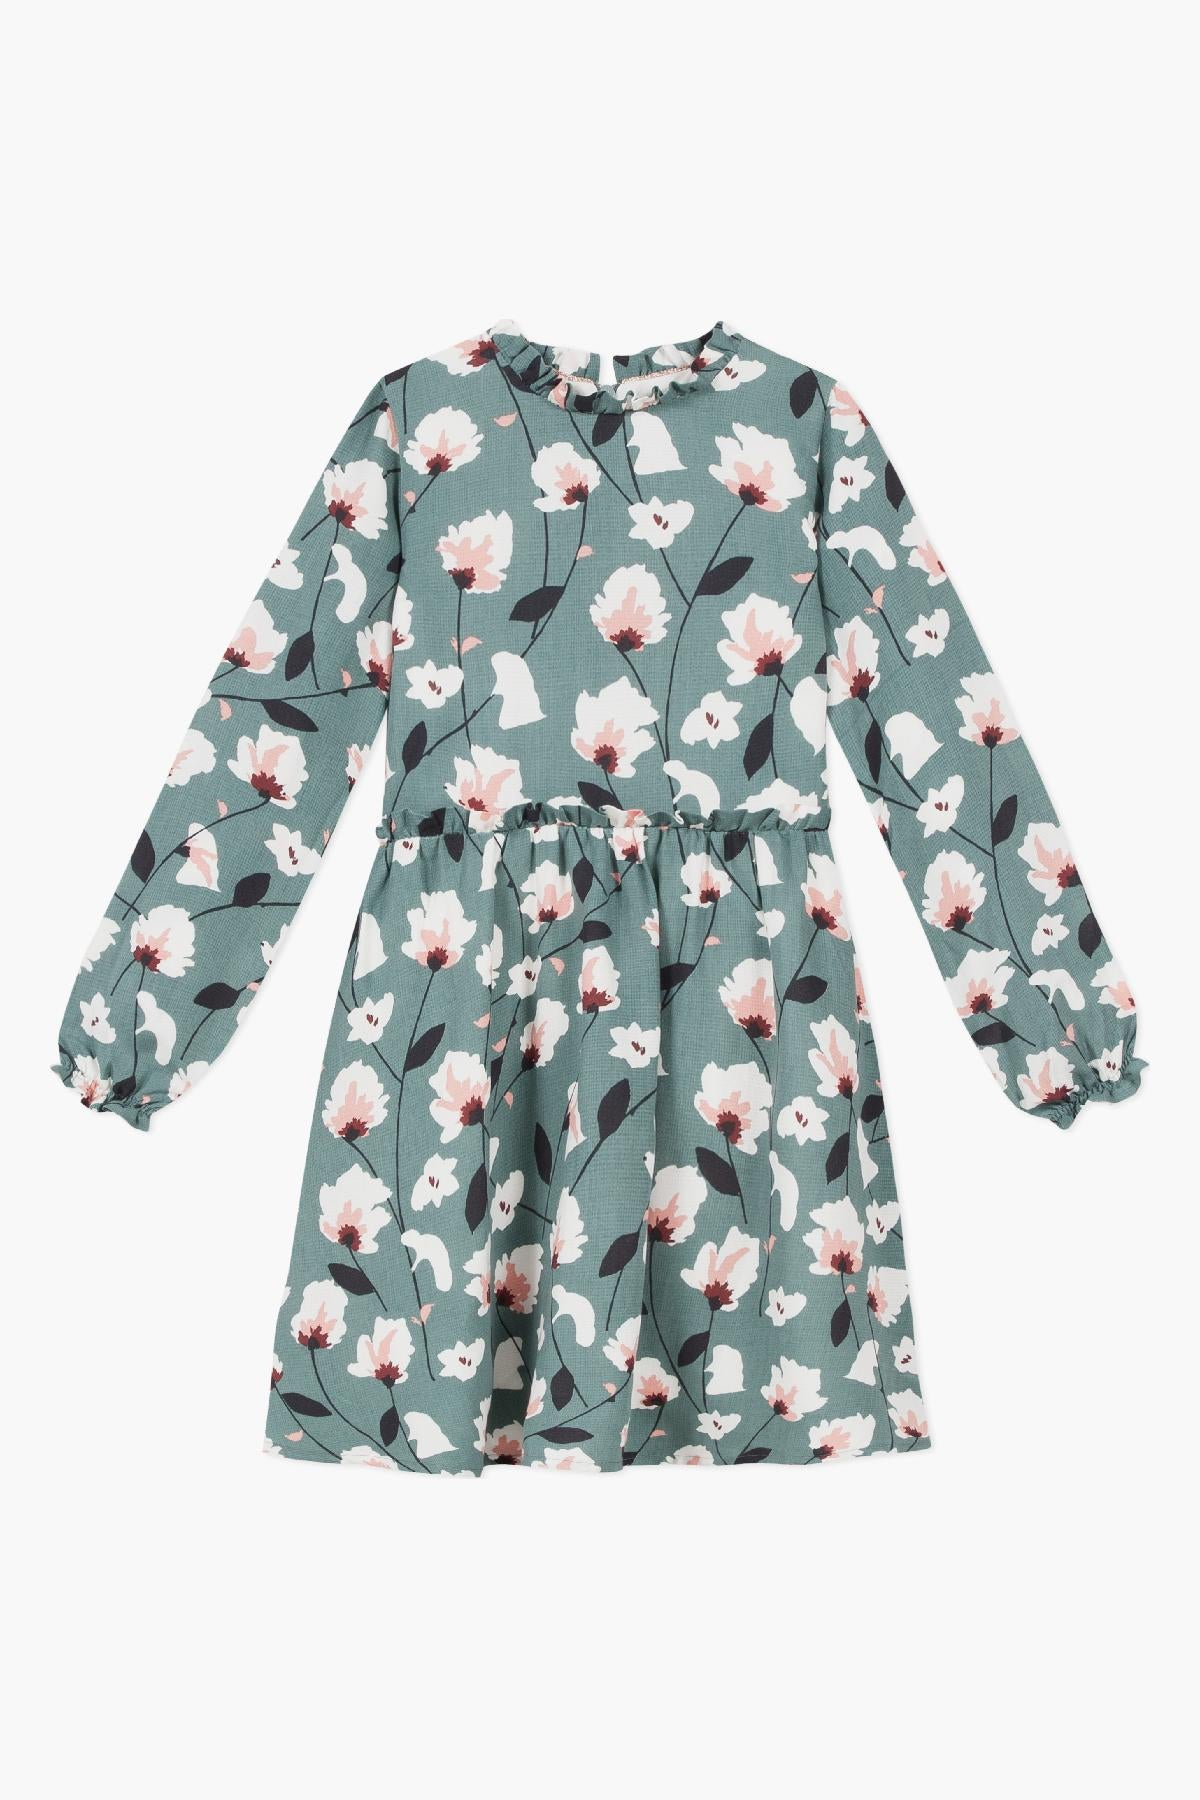 Jean Bourget Lagoon Blue Floral Dress